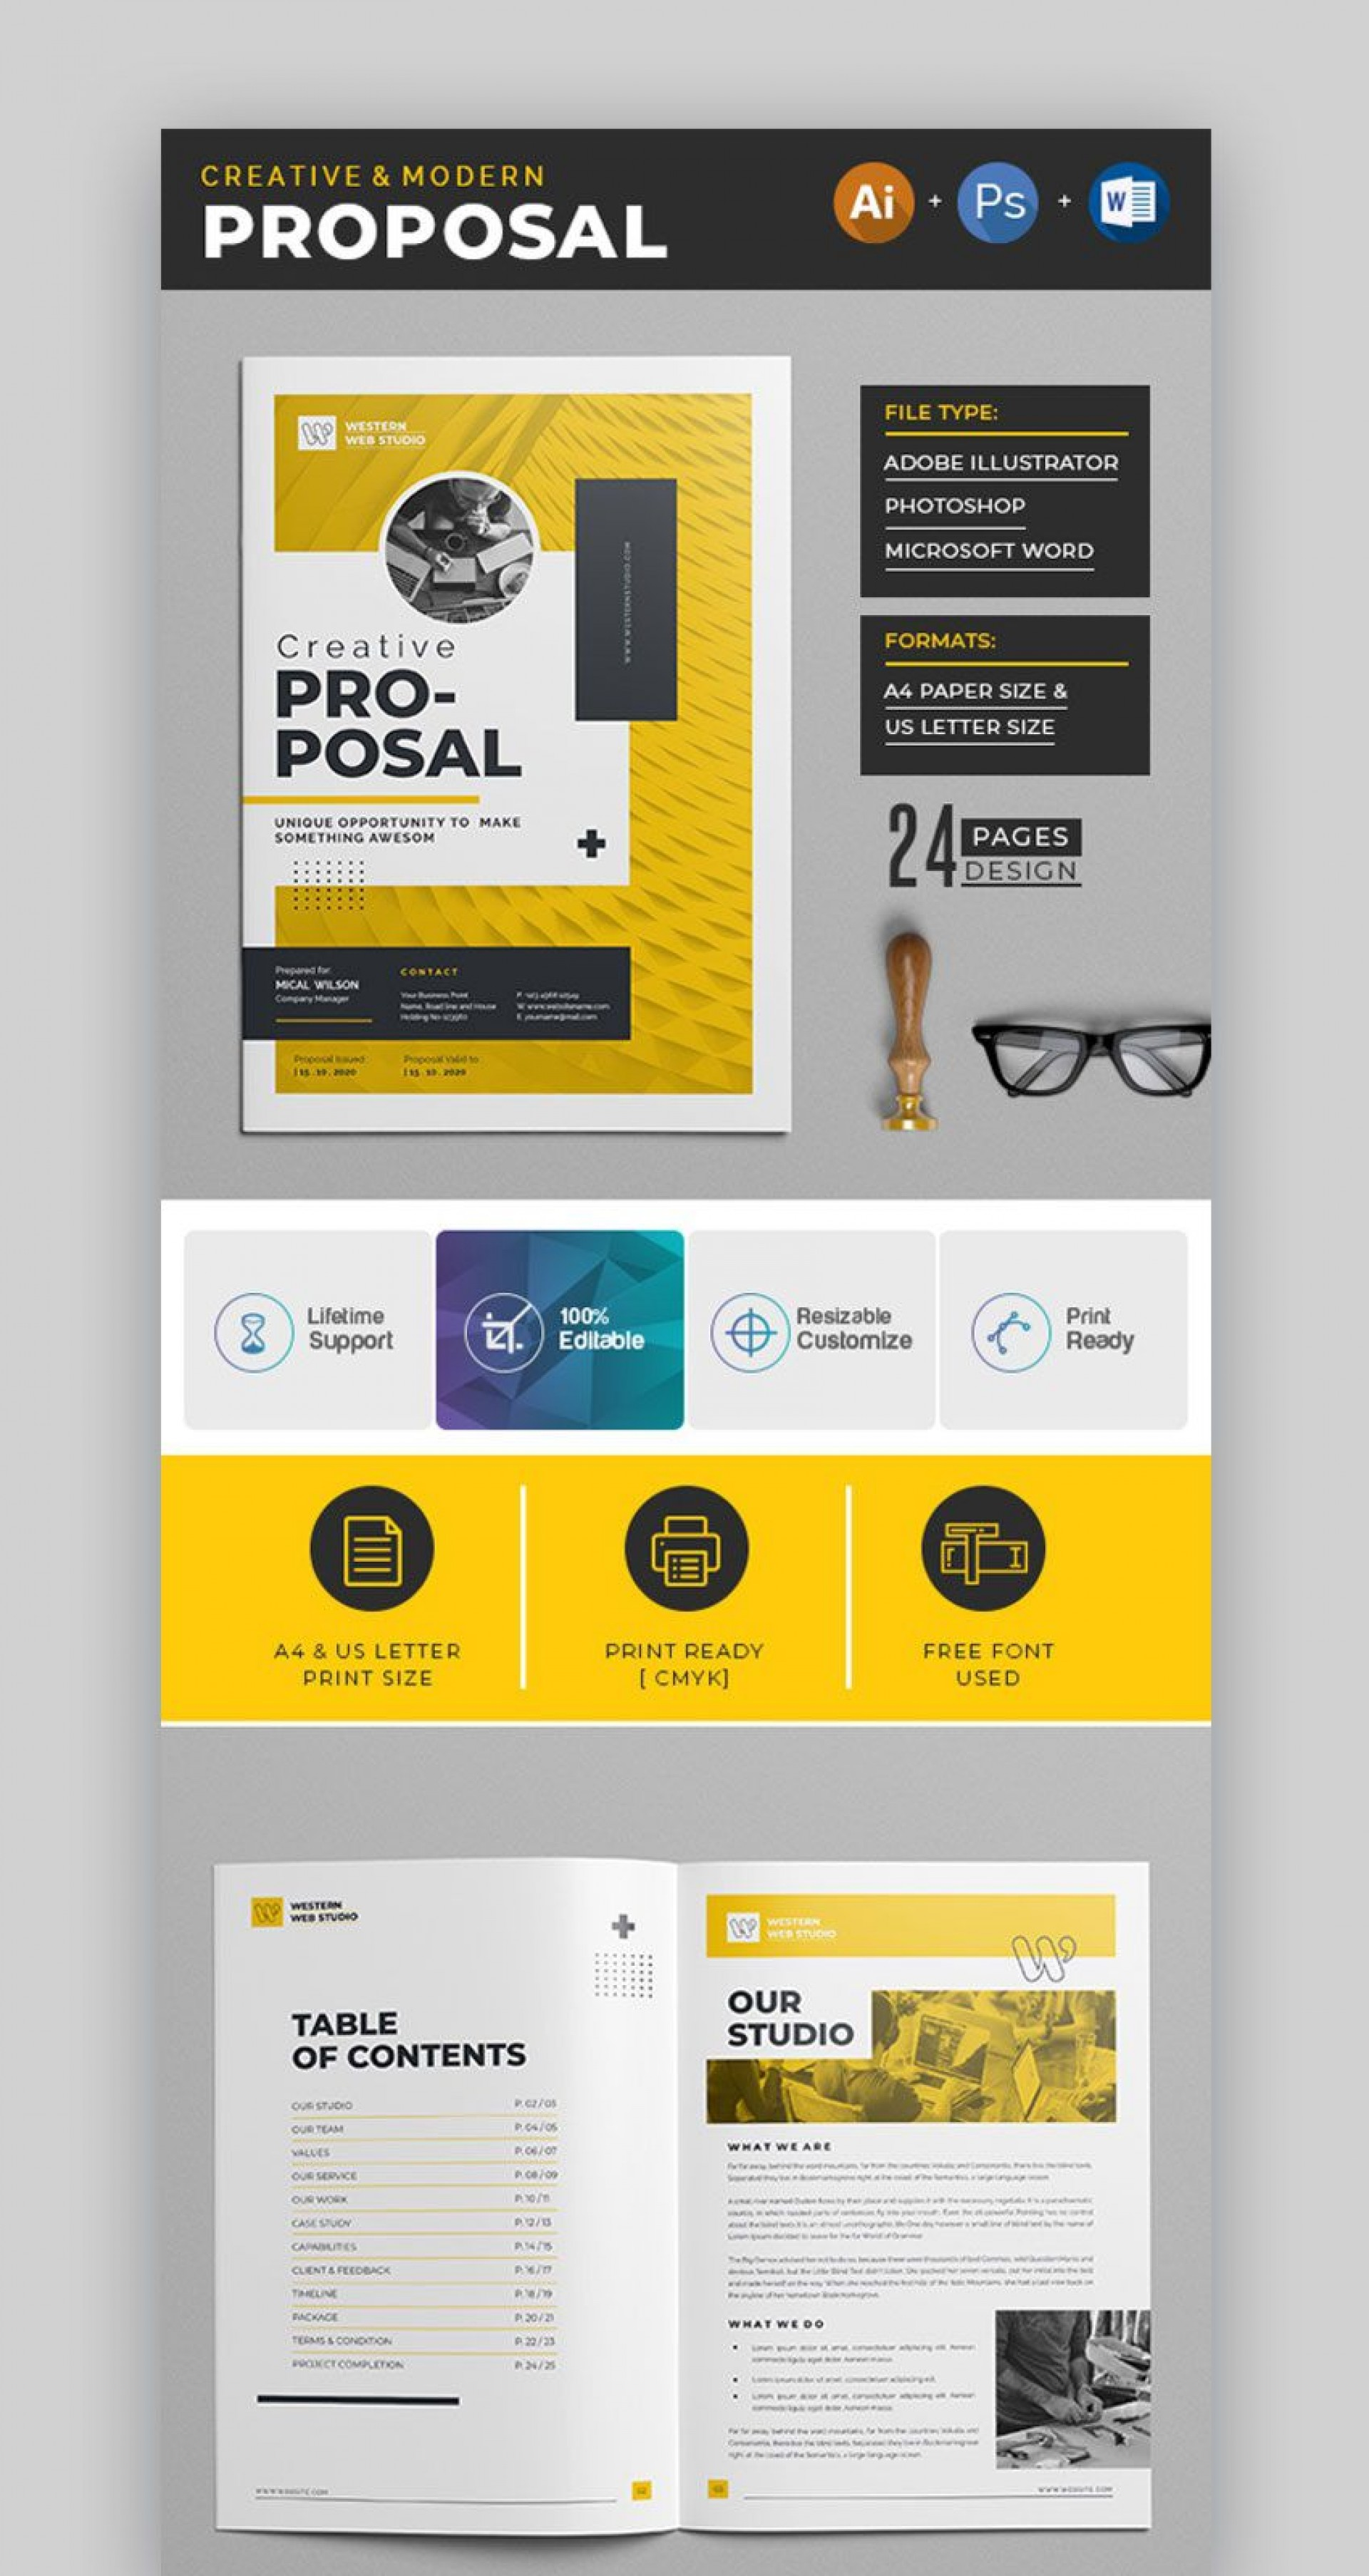 006 Exceptional Graphic Design Proposal Template Word Sample 1920